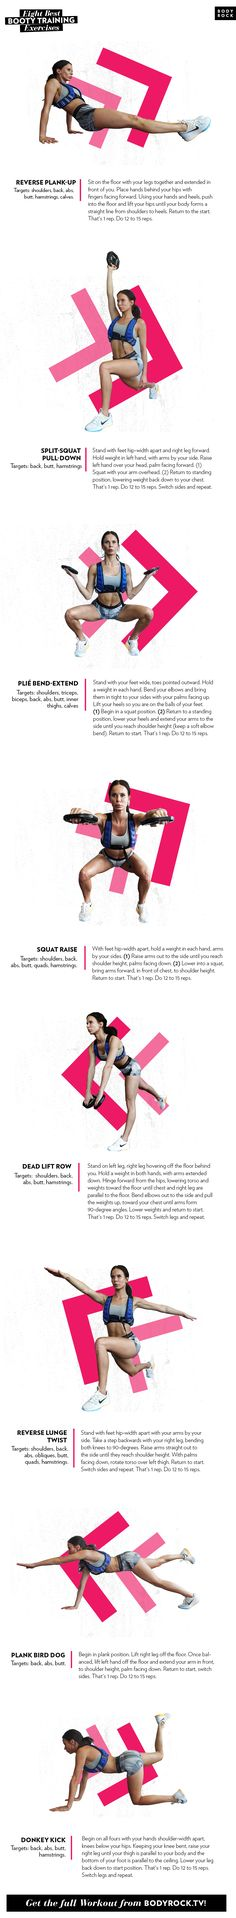 Check out the full post! http://www.bodyrock.tv/fitness/eight-best-booty-training-exercises/